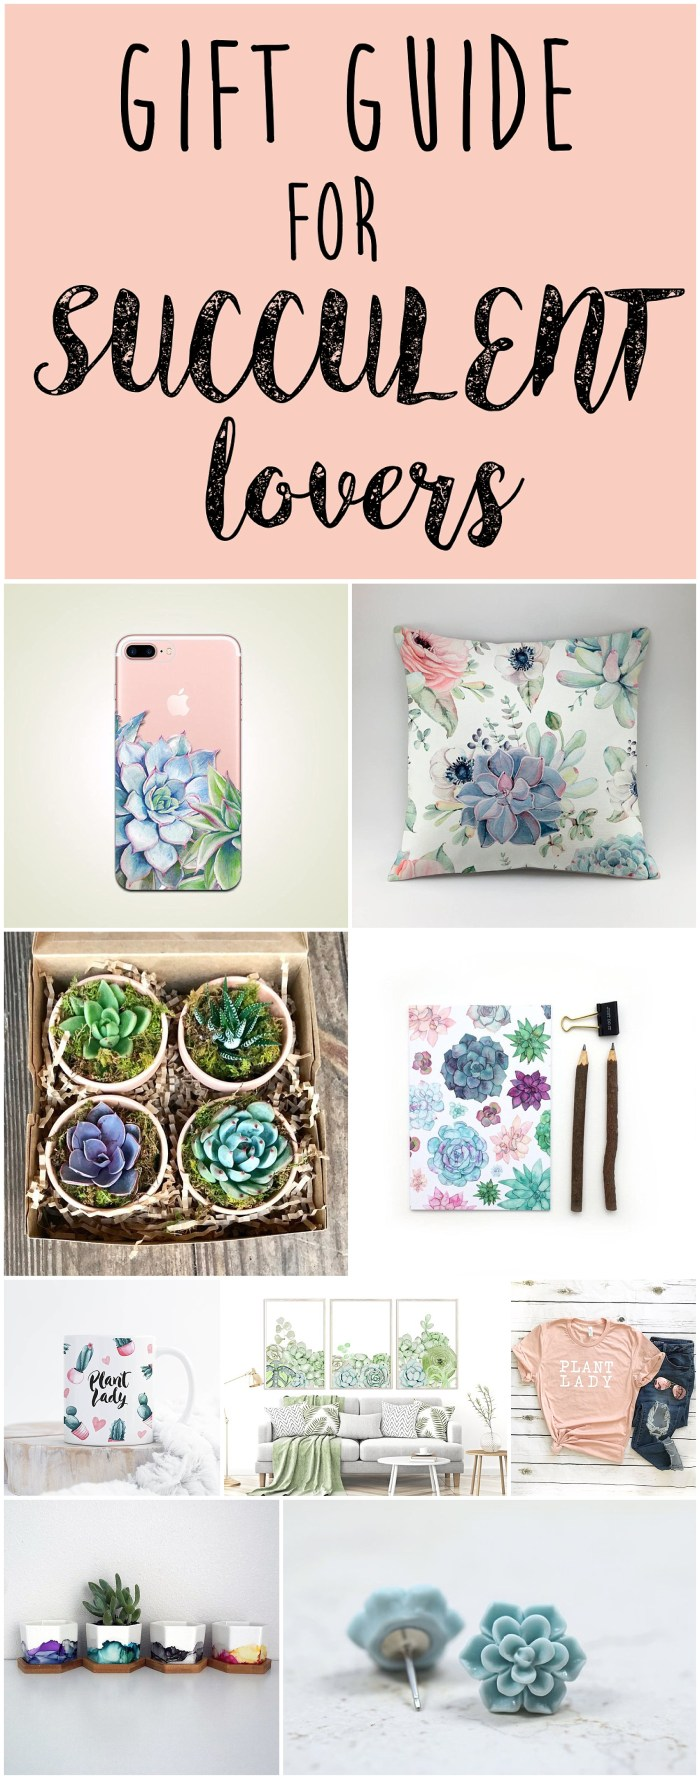 Succulent Gifts | Gifts for Mom | Gifts for Daughter | Gifts Ideas | Succulent Gift Ideas | Succulent Gifts | Succulent Planter | Succulent Jewelry | Succulent Shirt | Succulent Phone Case | Succulent Wall Art | Succulent Printable | Succulent Mug | Christmas Gift ideas for Her | Gift Ideas for Her